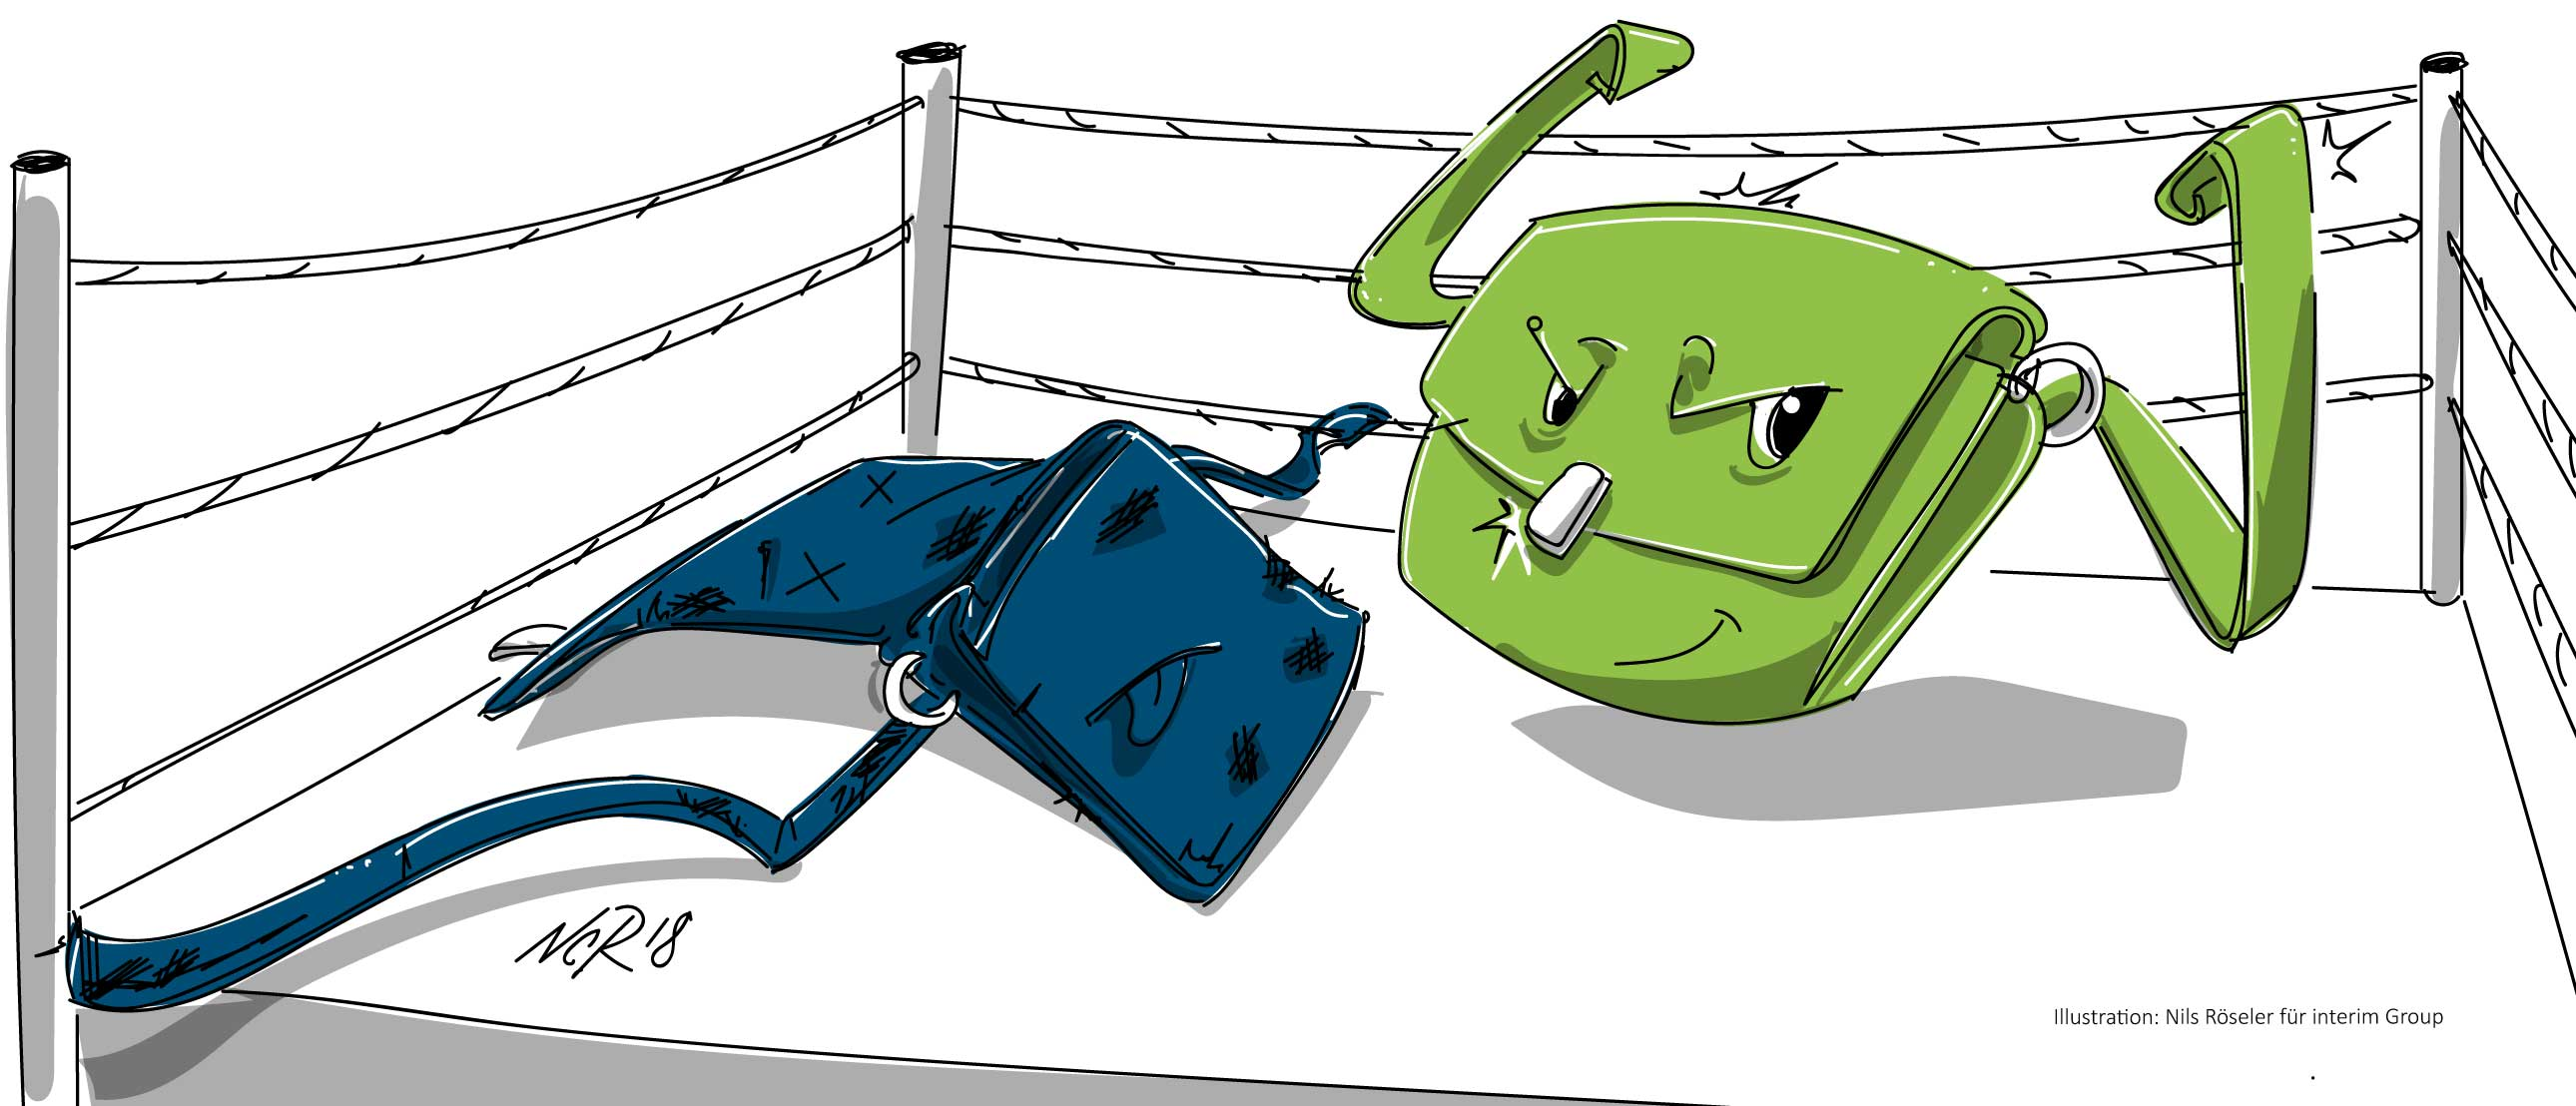 Illustration zum Thema New Work. Copyright Nils Röseler